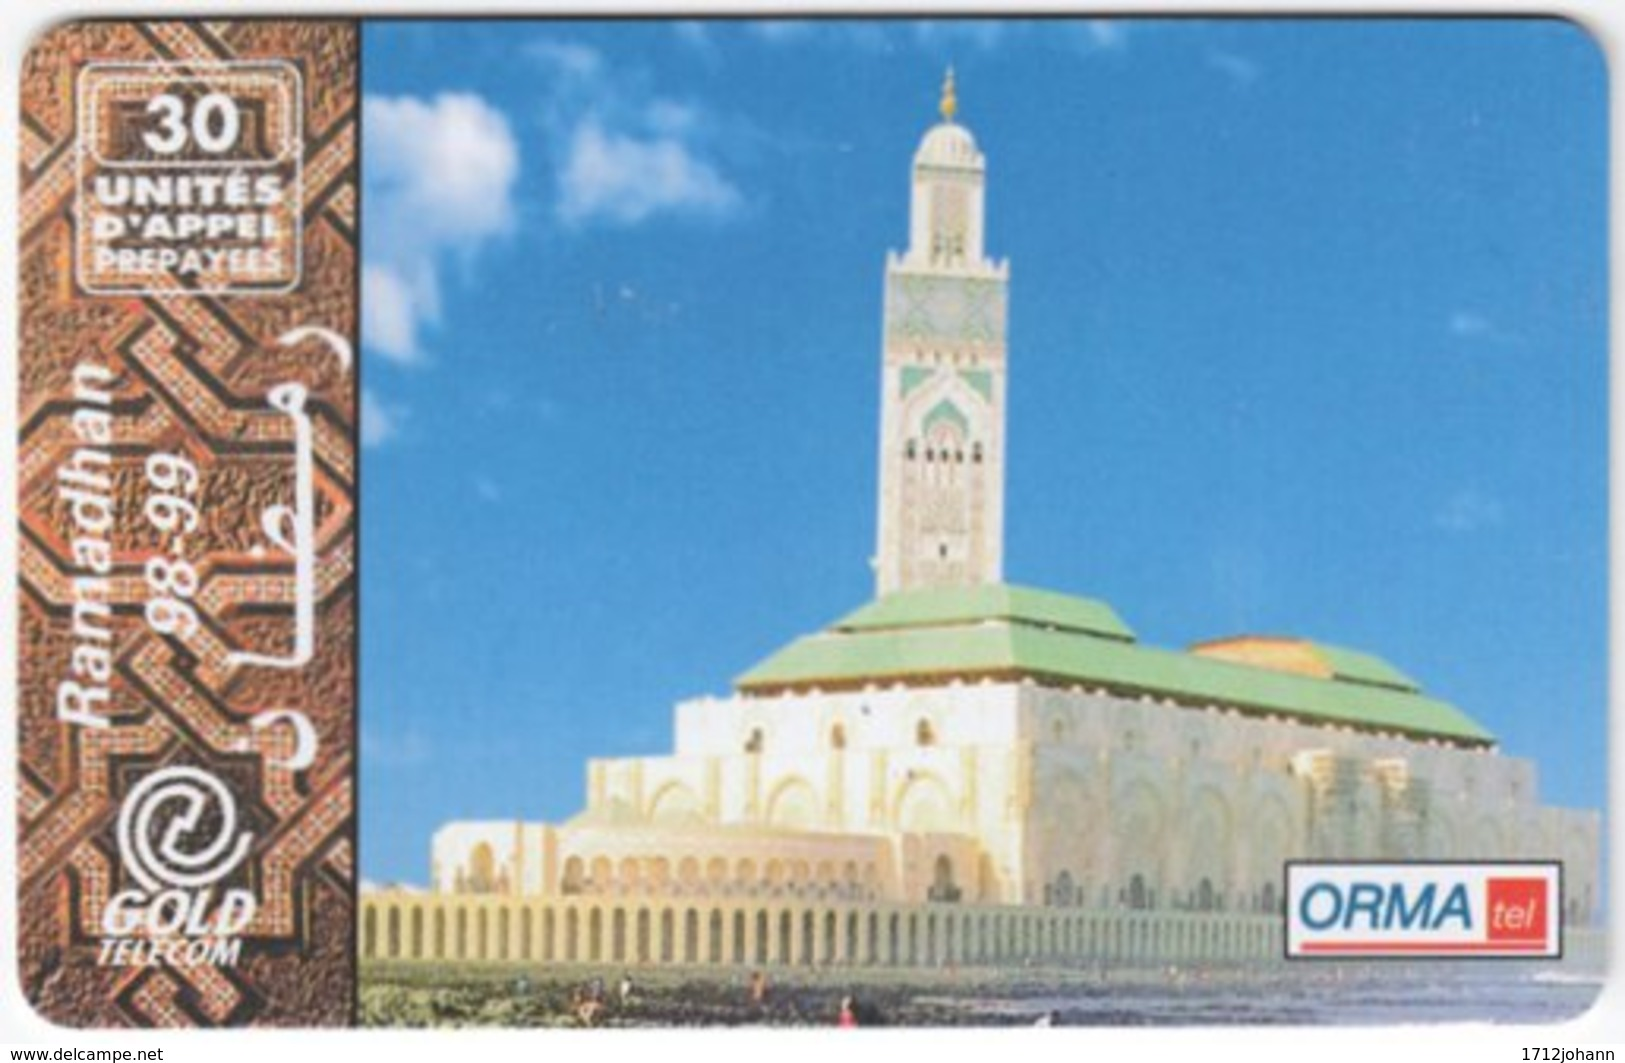 FRANCE C-519 Prepaid ORMA - Architecture, Monumental Building - Used - Nachladekarten (Refill)